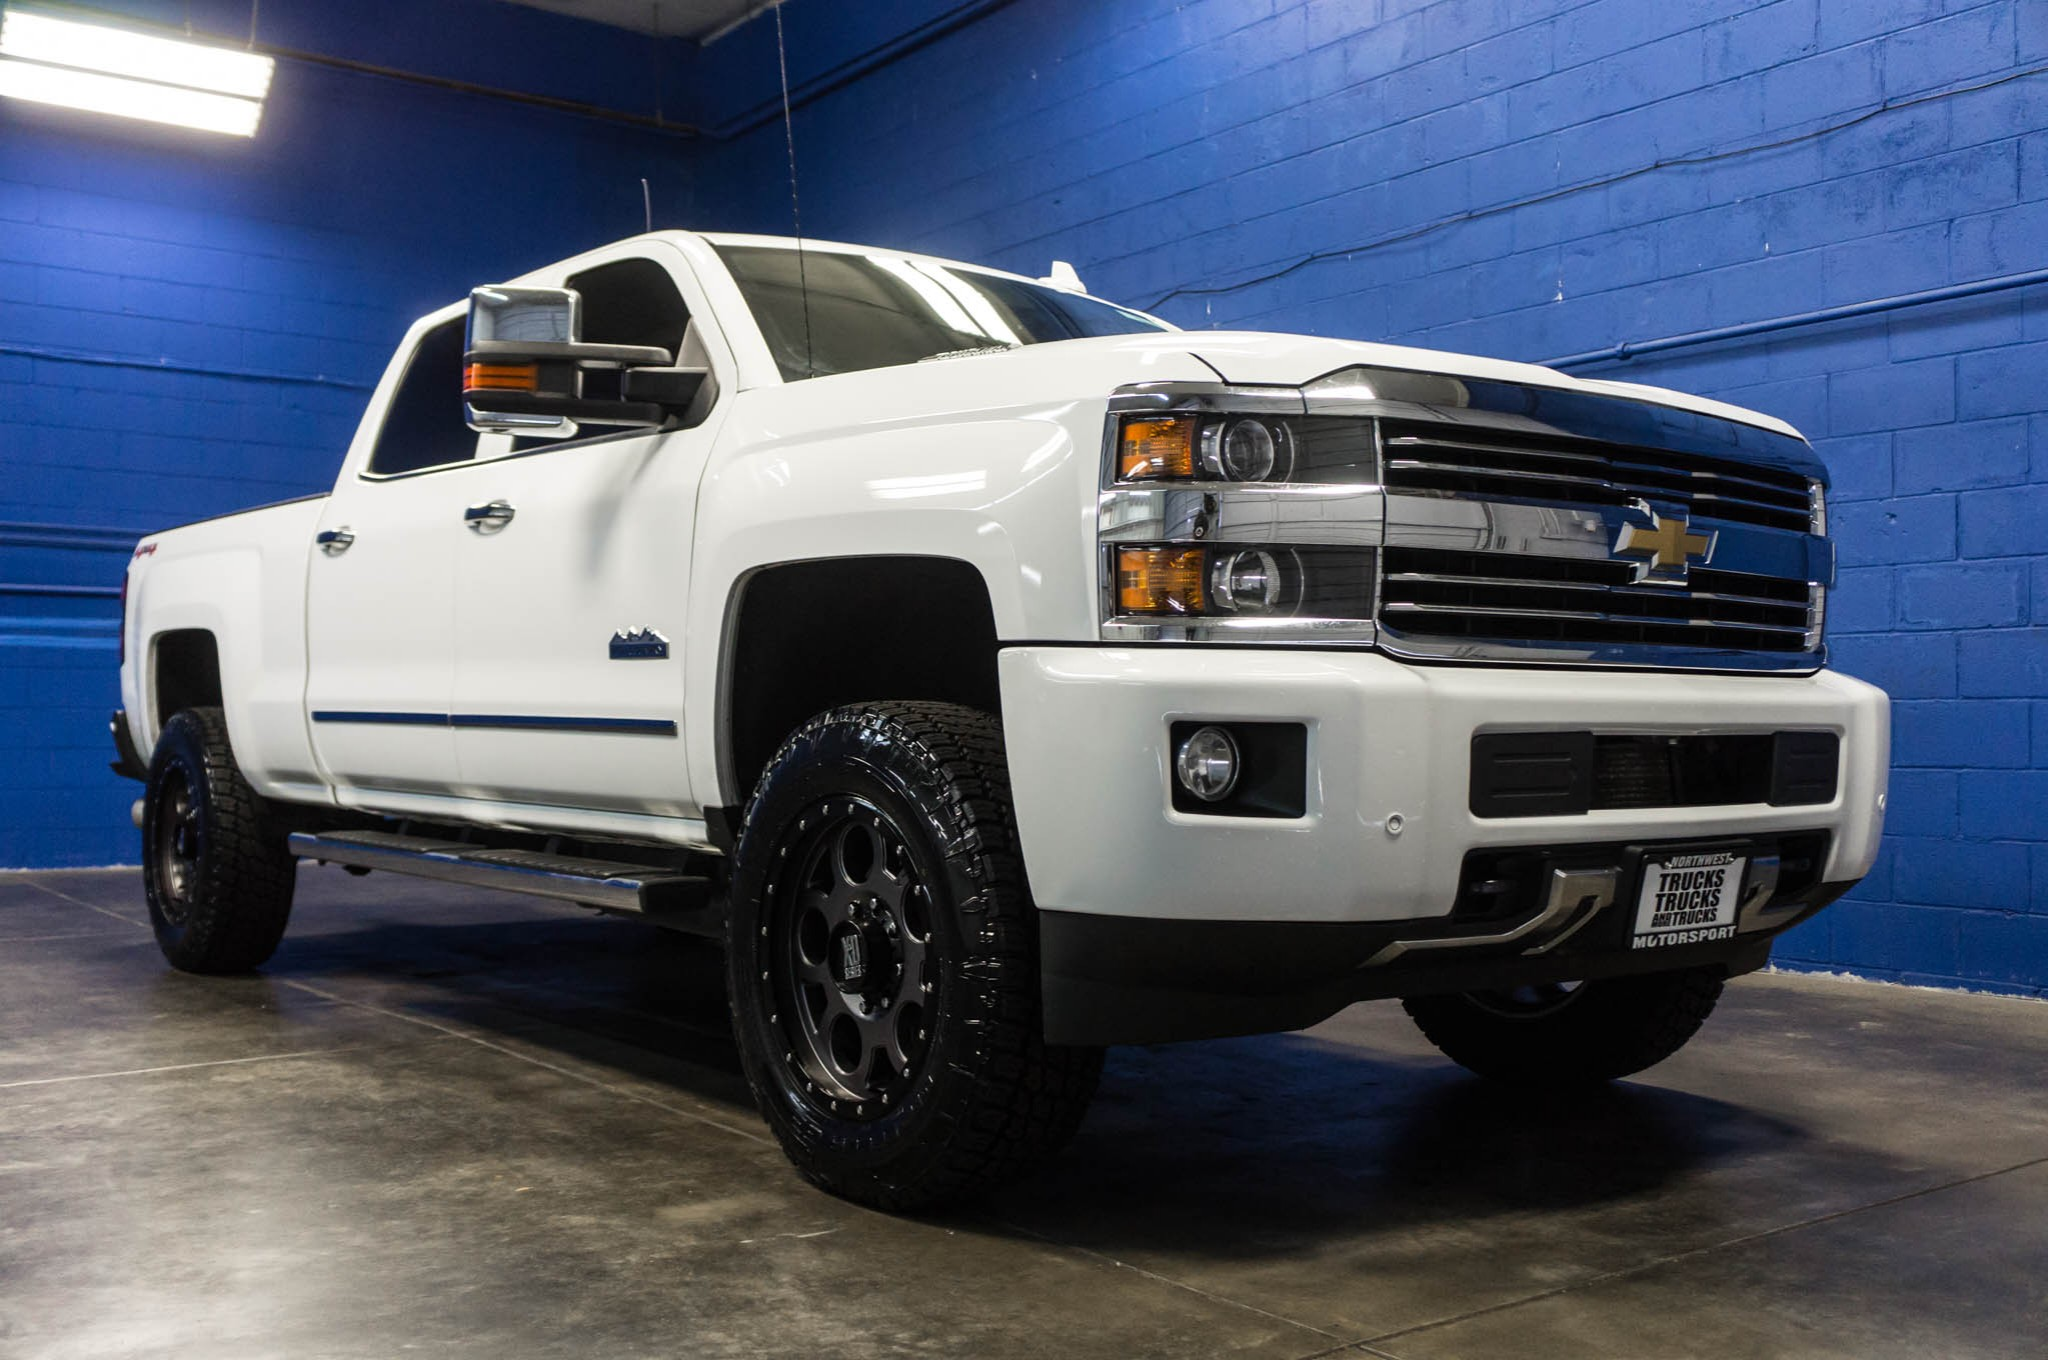 used lifted 2015 chevrolet silverado 2500 high country 4x4 diesel truck for sale 34599. Black Bedroom Furniture Sets. Home Design Ideas